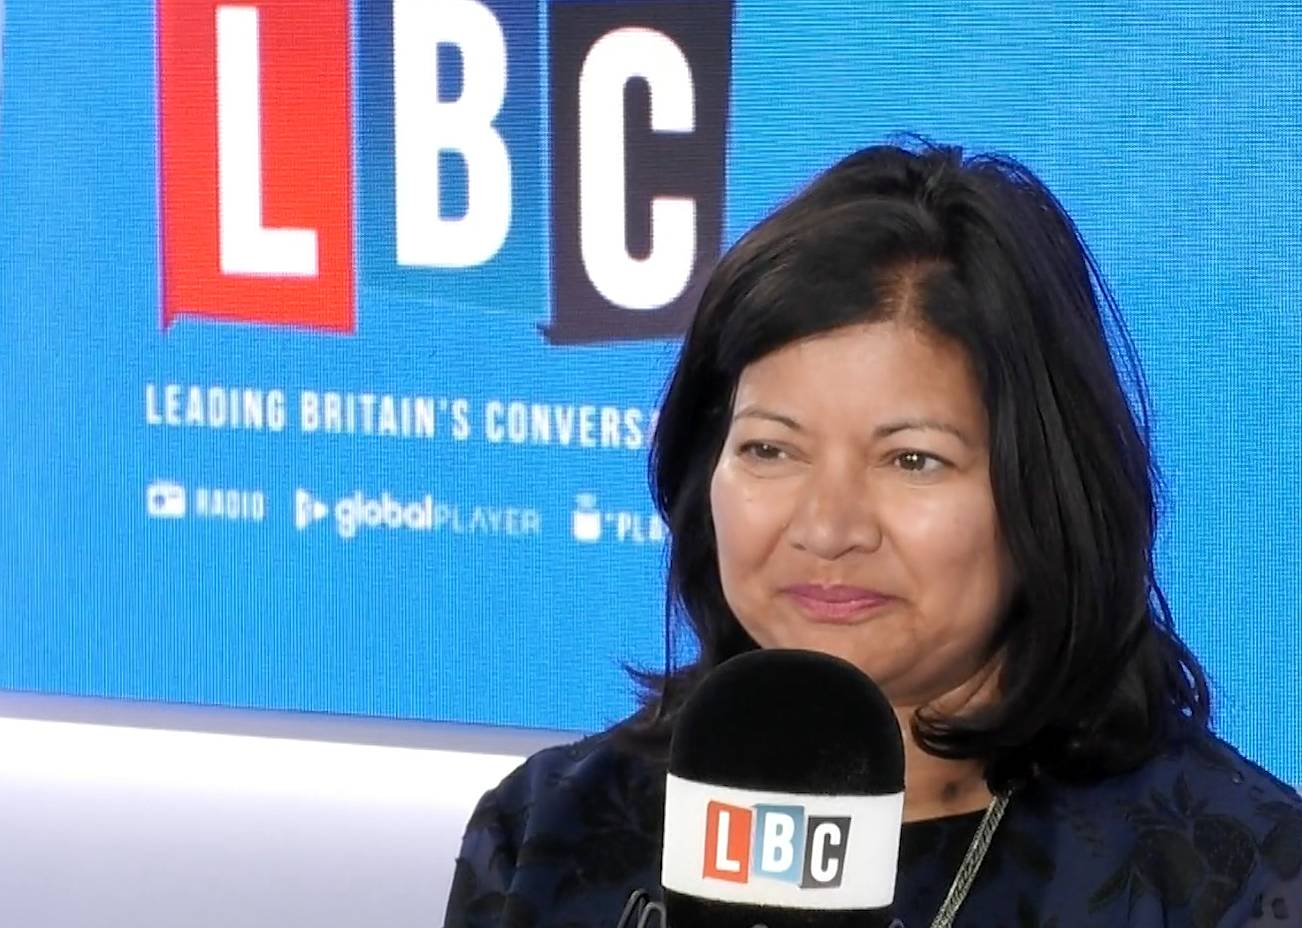 Watch LBC's Shelagh Fogarty speak to Shirley Rodrigues, Deputy Mayor for Environment and Energy, about London's air pollution crisis, the initiatives in place to try and improve it and the ways we can all help raise air quality in the capital.